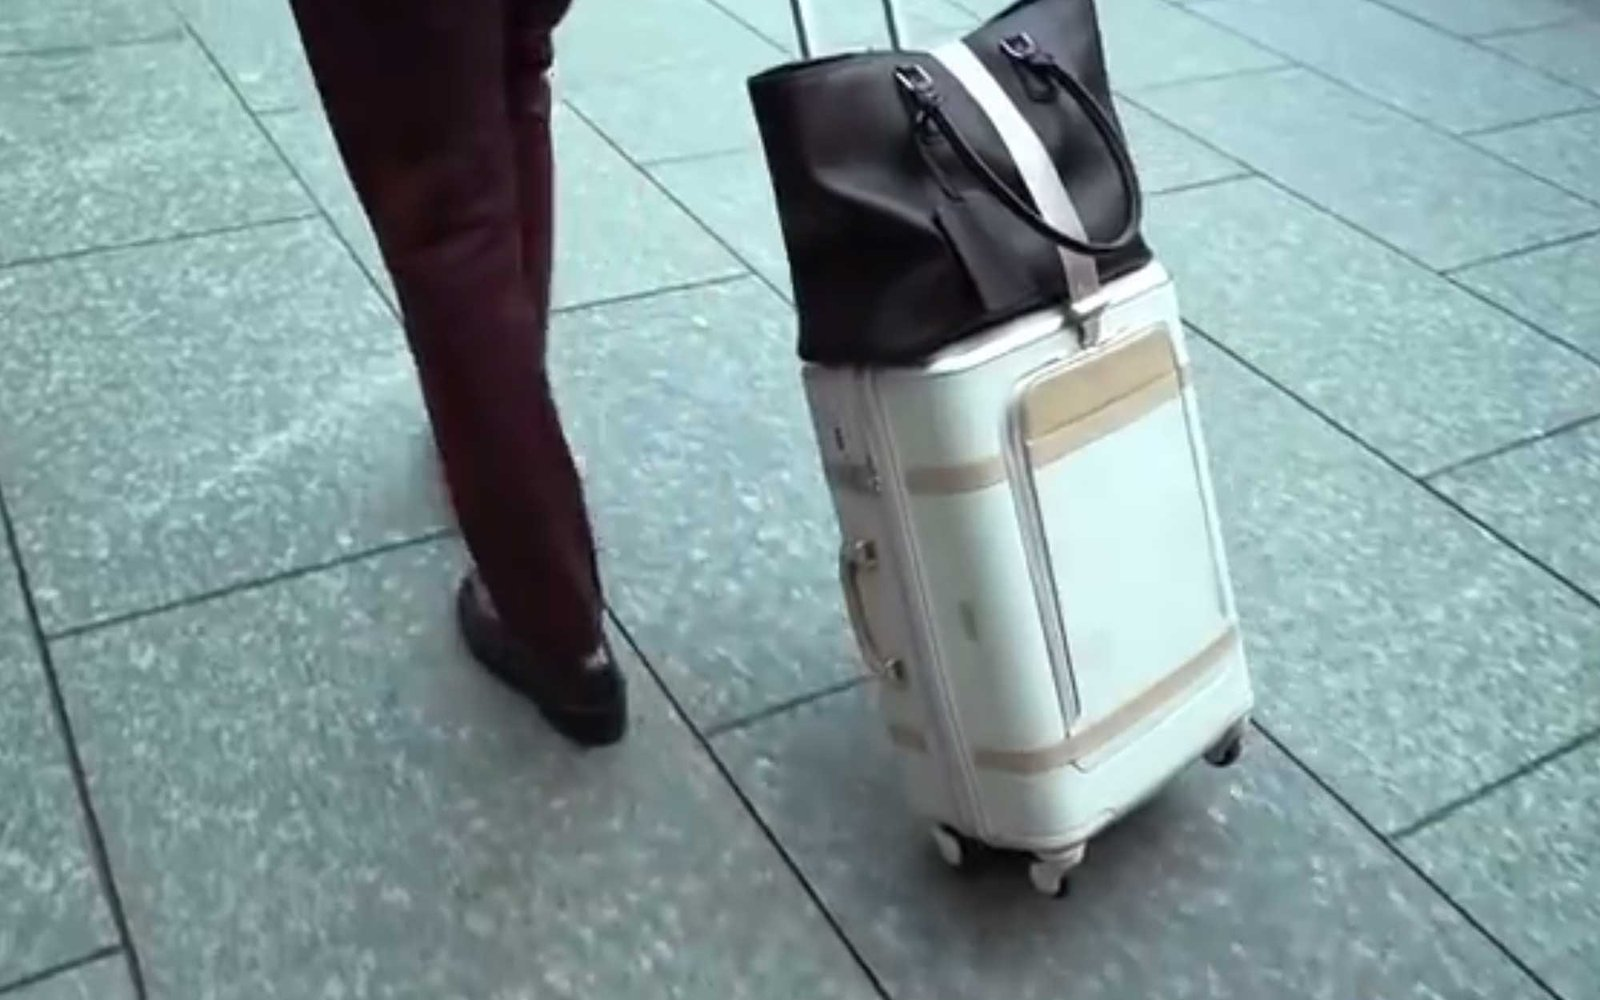 The Floatti Suitcase Is About To Become Your Favorite